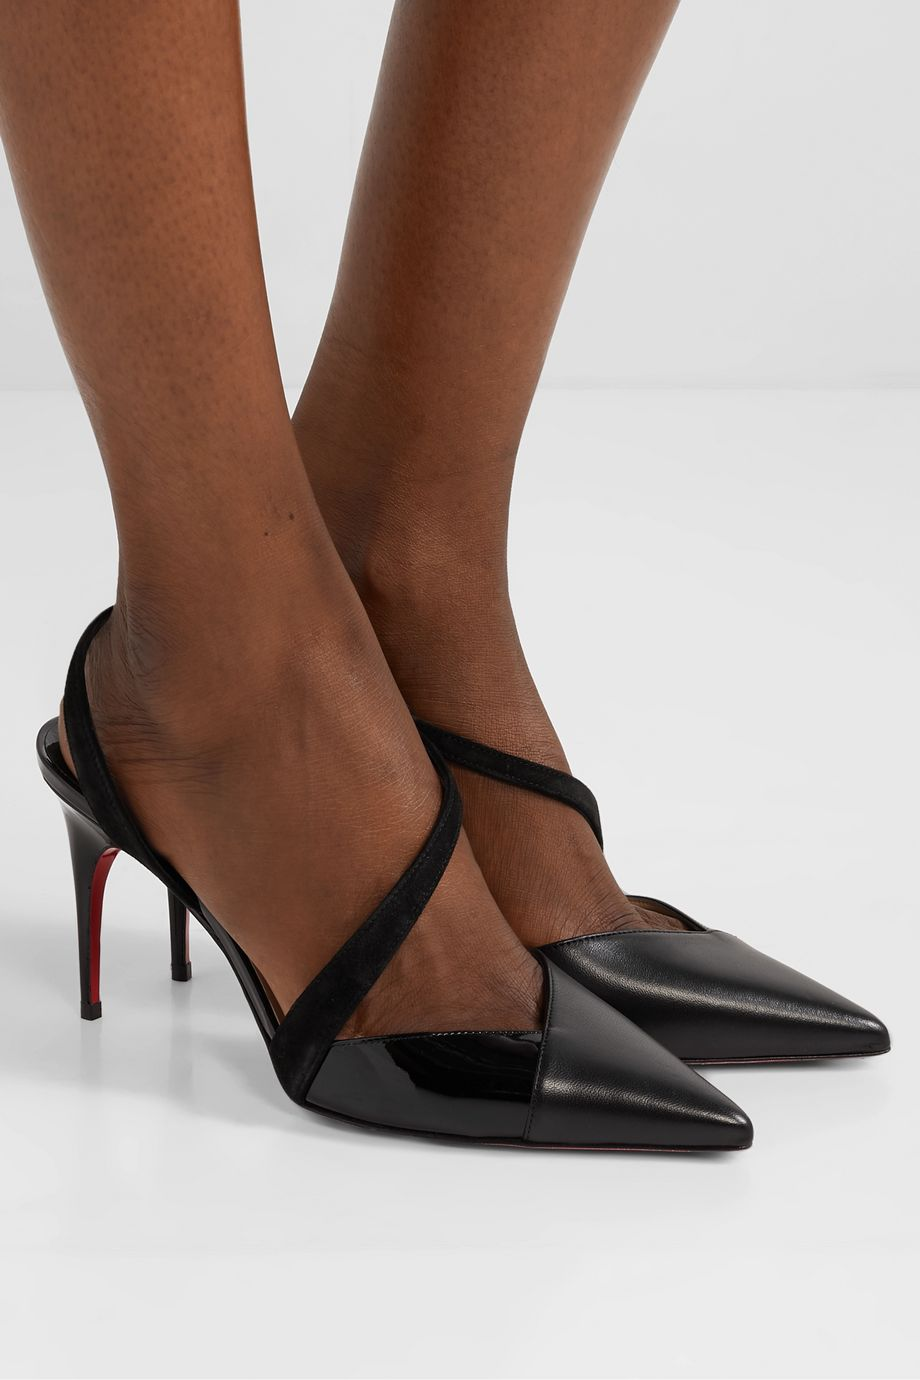 Christian Louboutin Platina 85 suede-trimmed patent and smooth leather slingback pumps